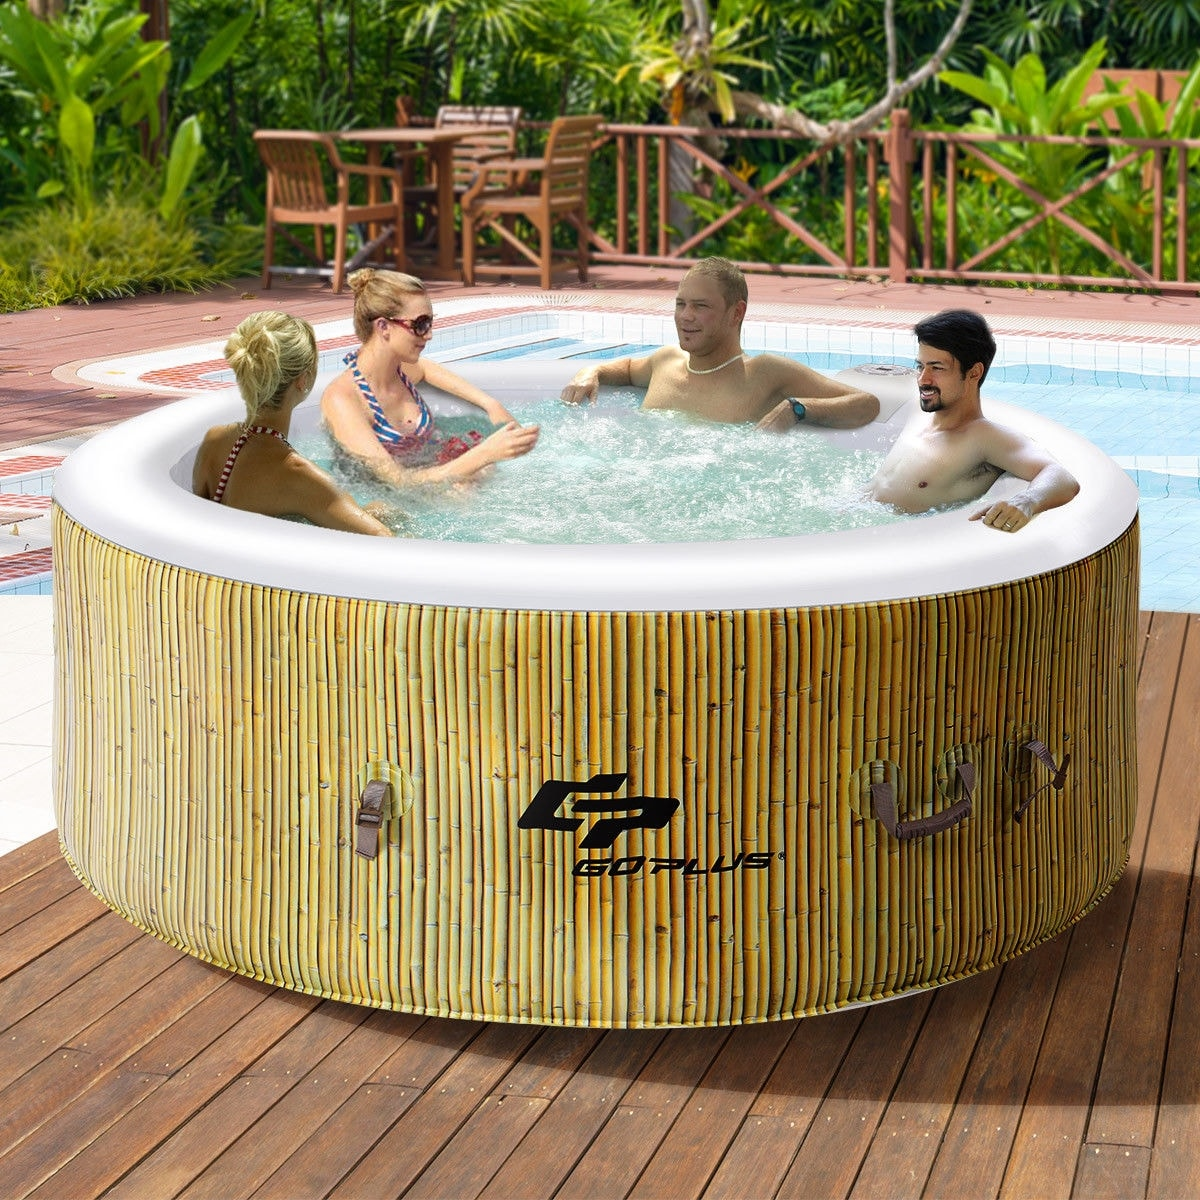 Outdoor Whirlpool Cheap Hot Tubs Spas Find Great Spas Pools Water Sports